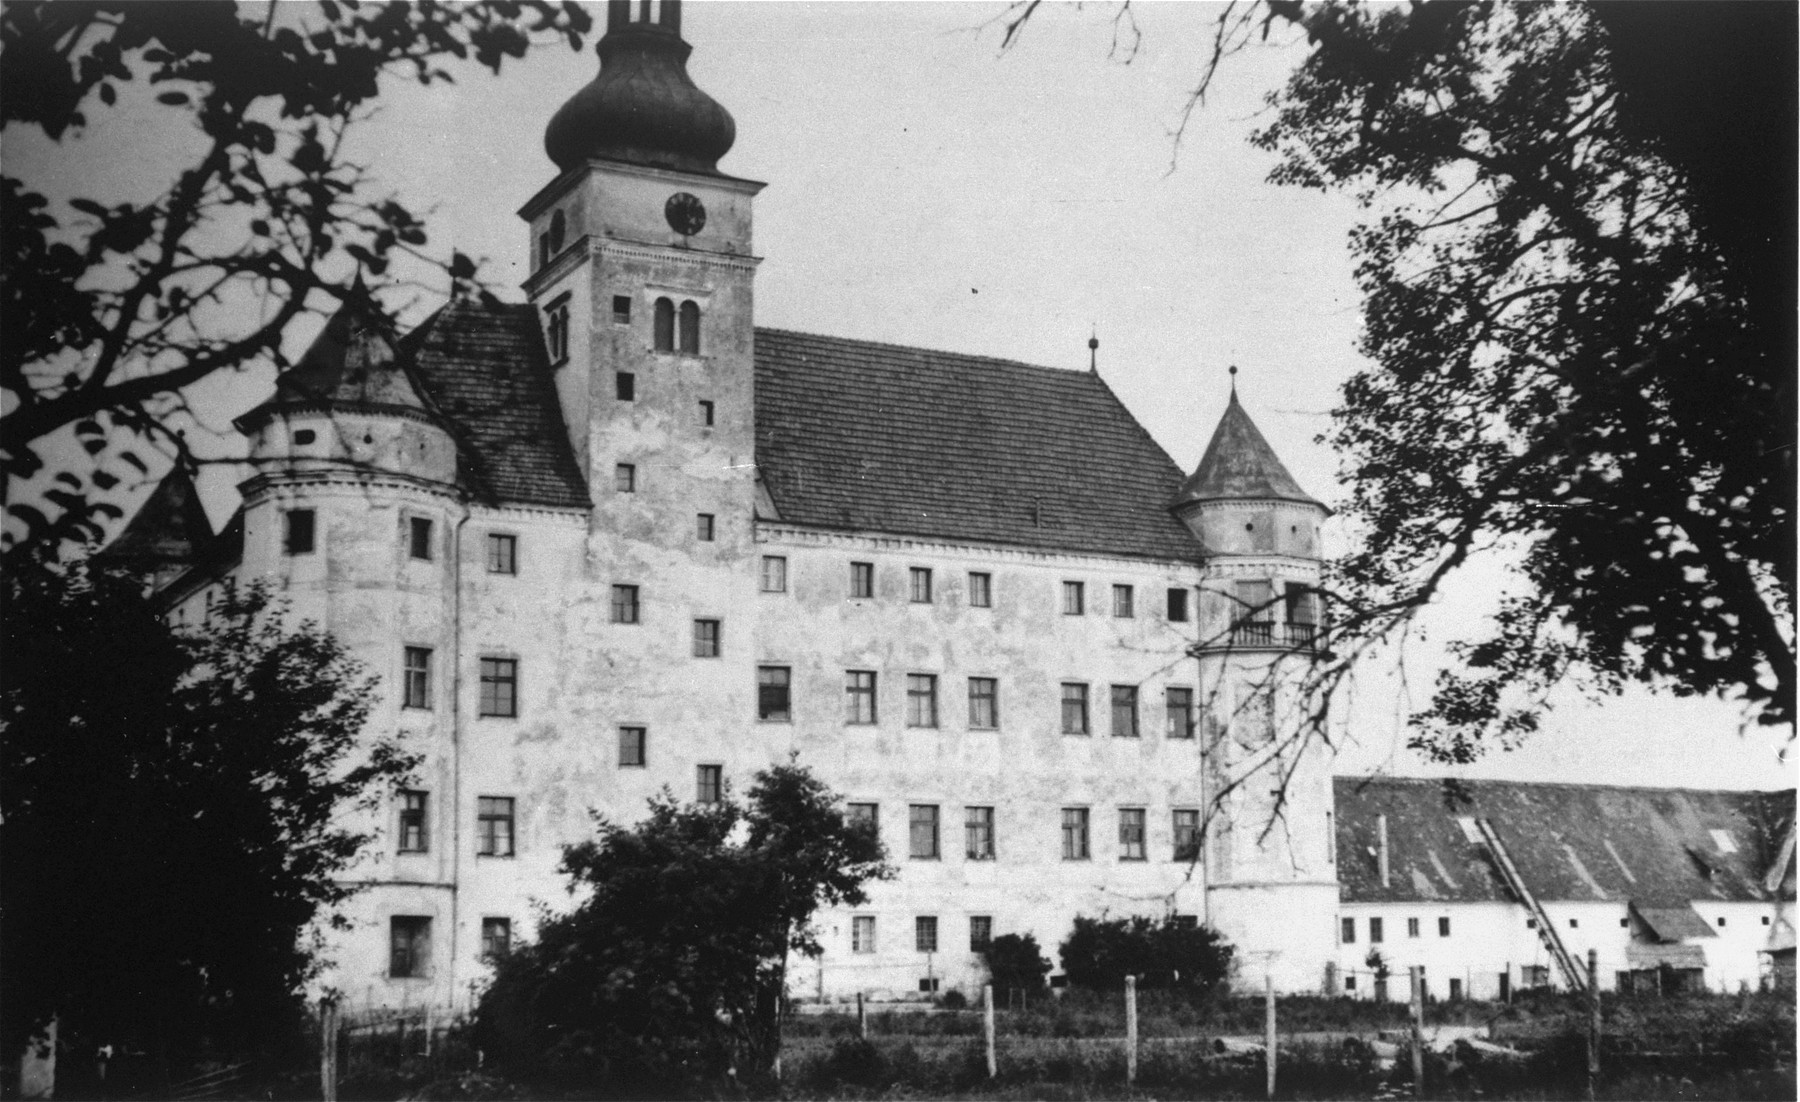 View of Hartheim castle.